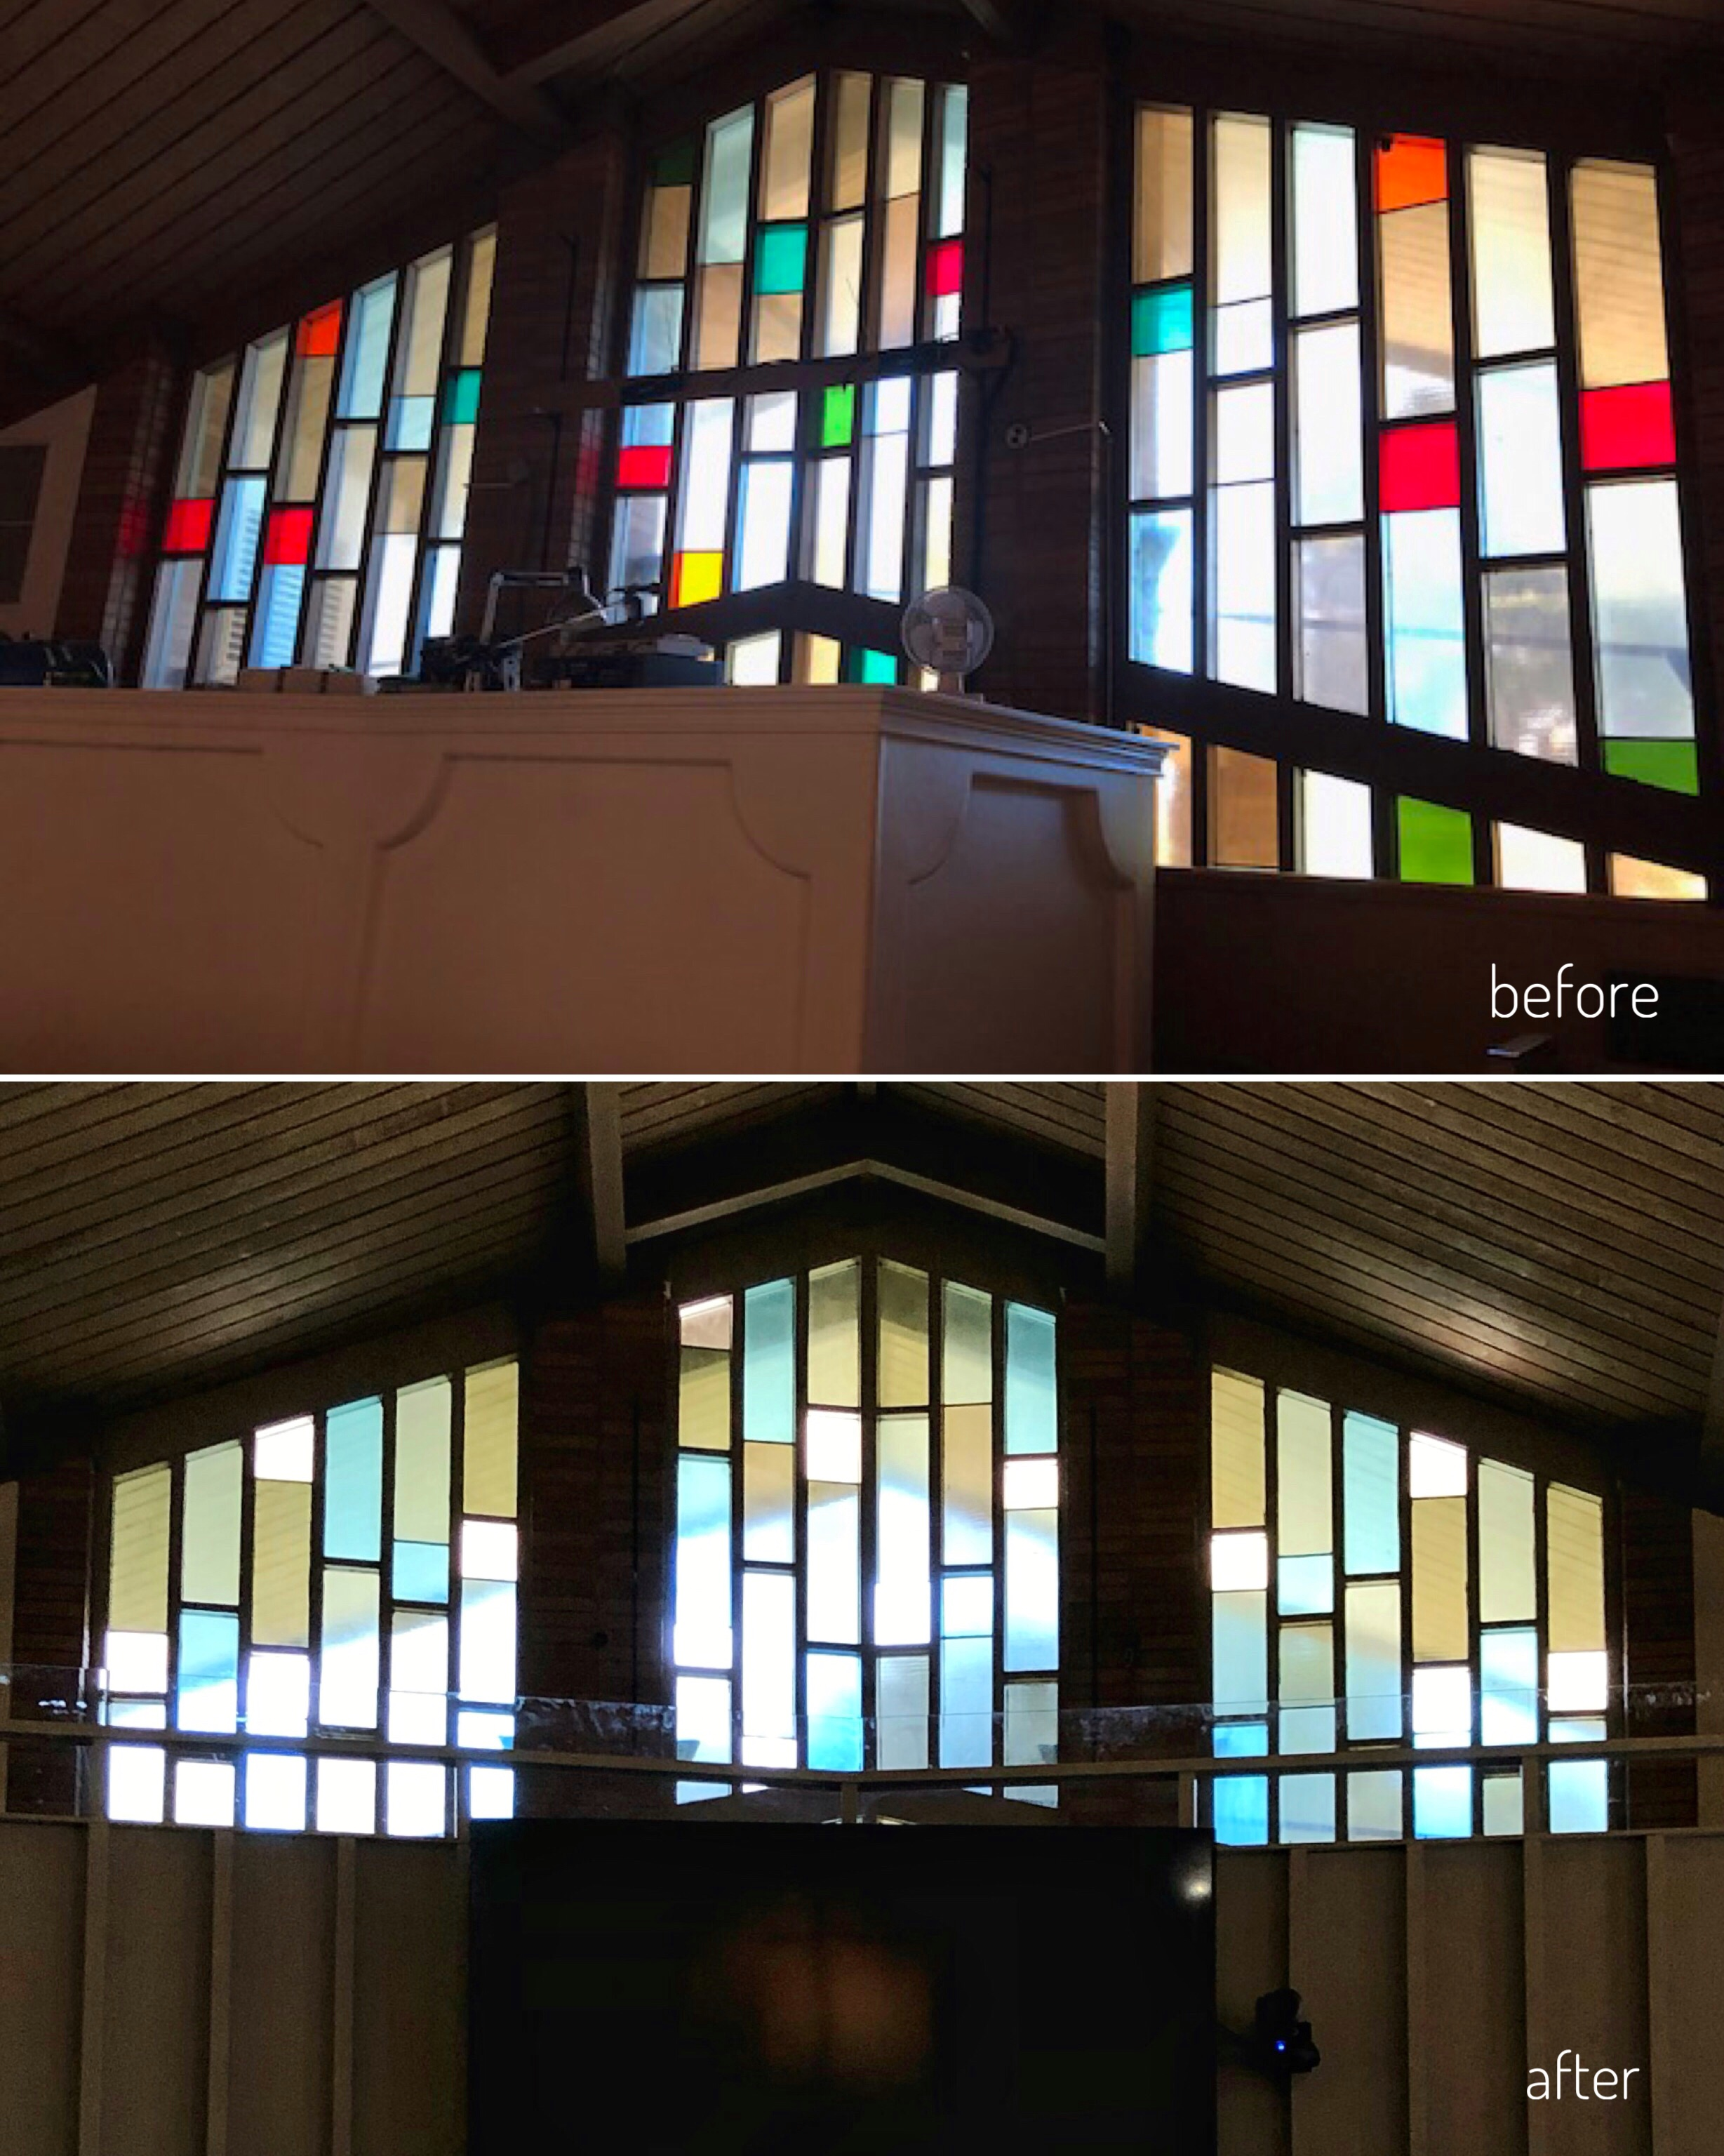 stained glass church window renovation update natural tones california before and after.jpg